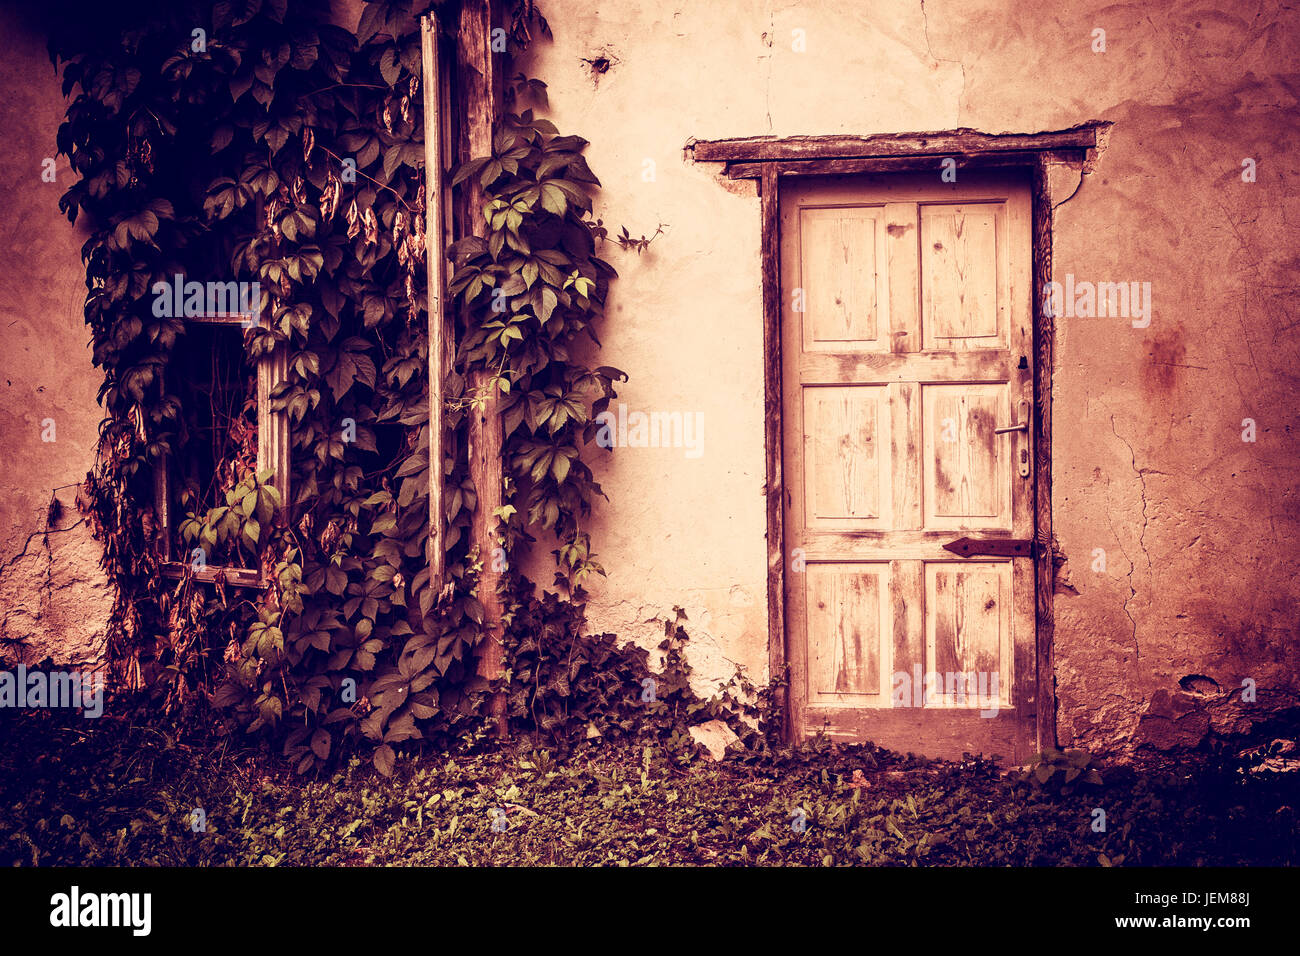 Spooky door & Spooky door Stock Photo: 146733682 - Alamy